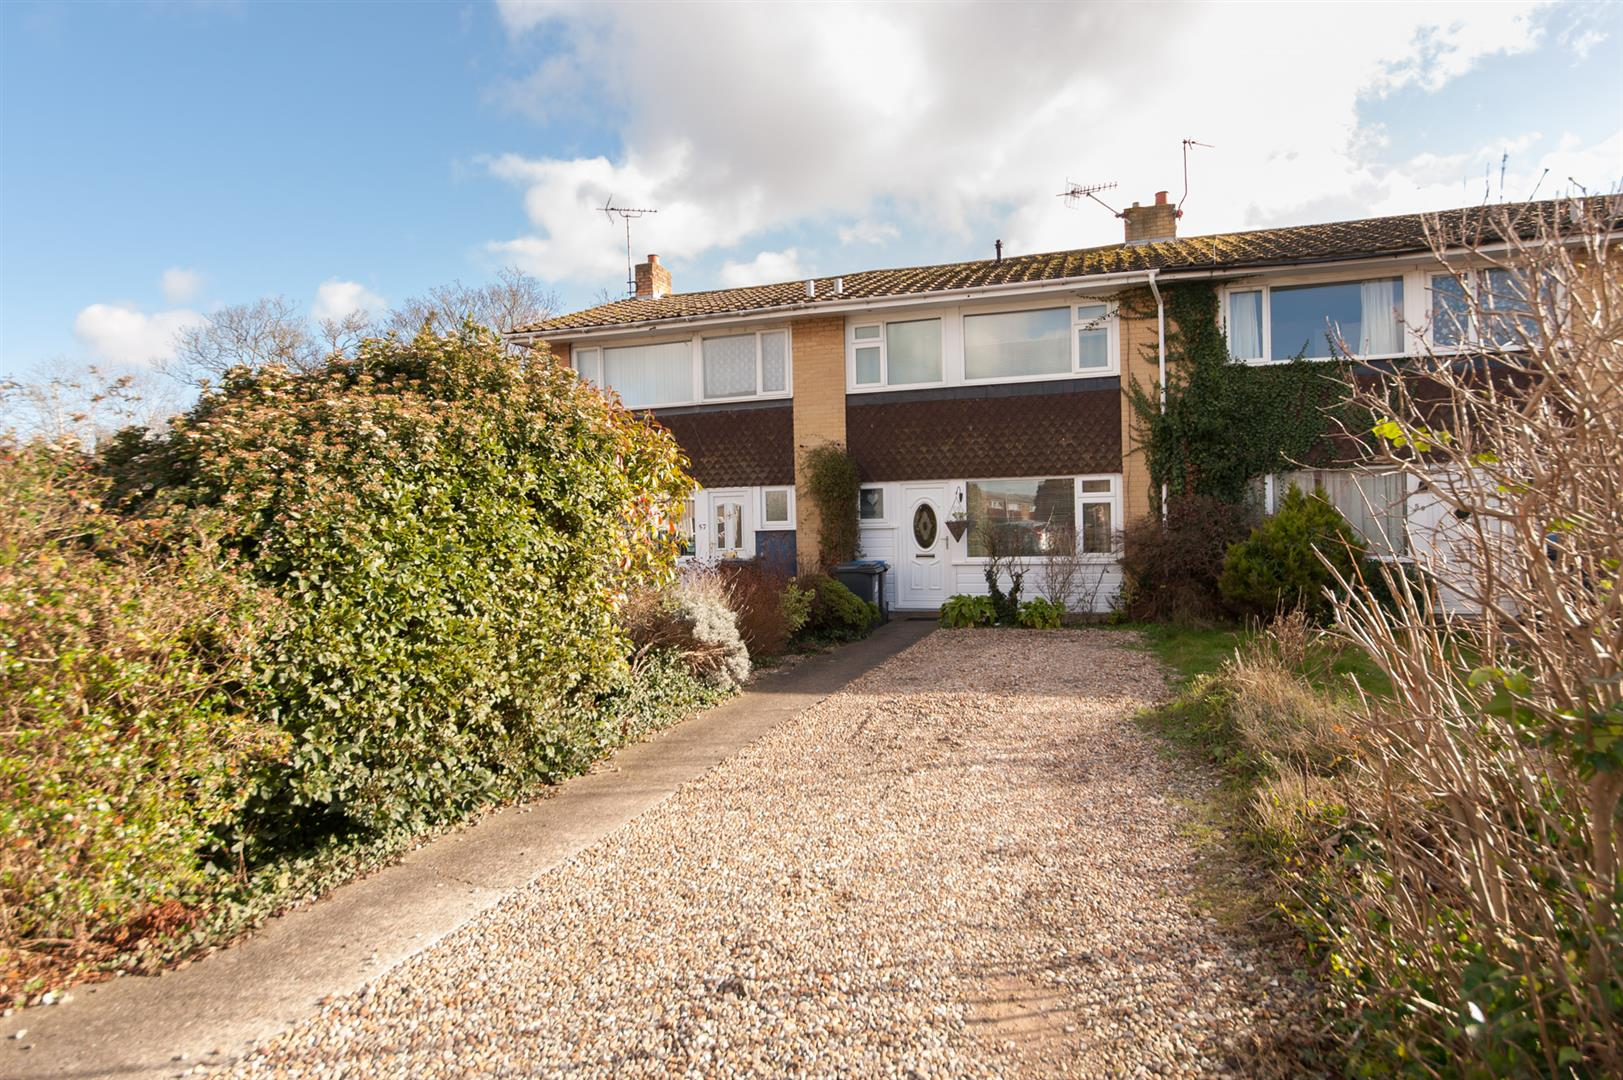 3 Bedrooms Terraced House for sale in Yew Tree Gardens, BIRCHINGTON